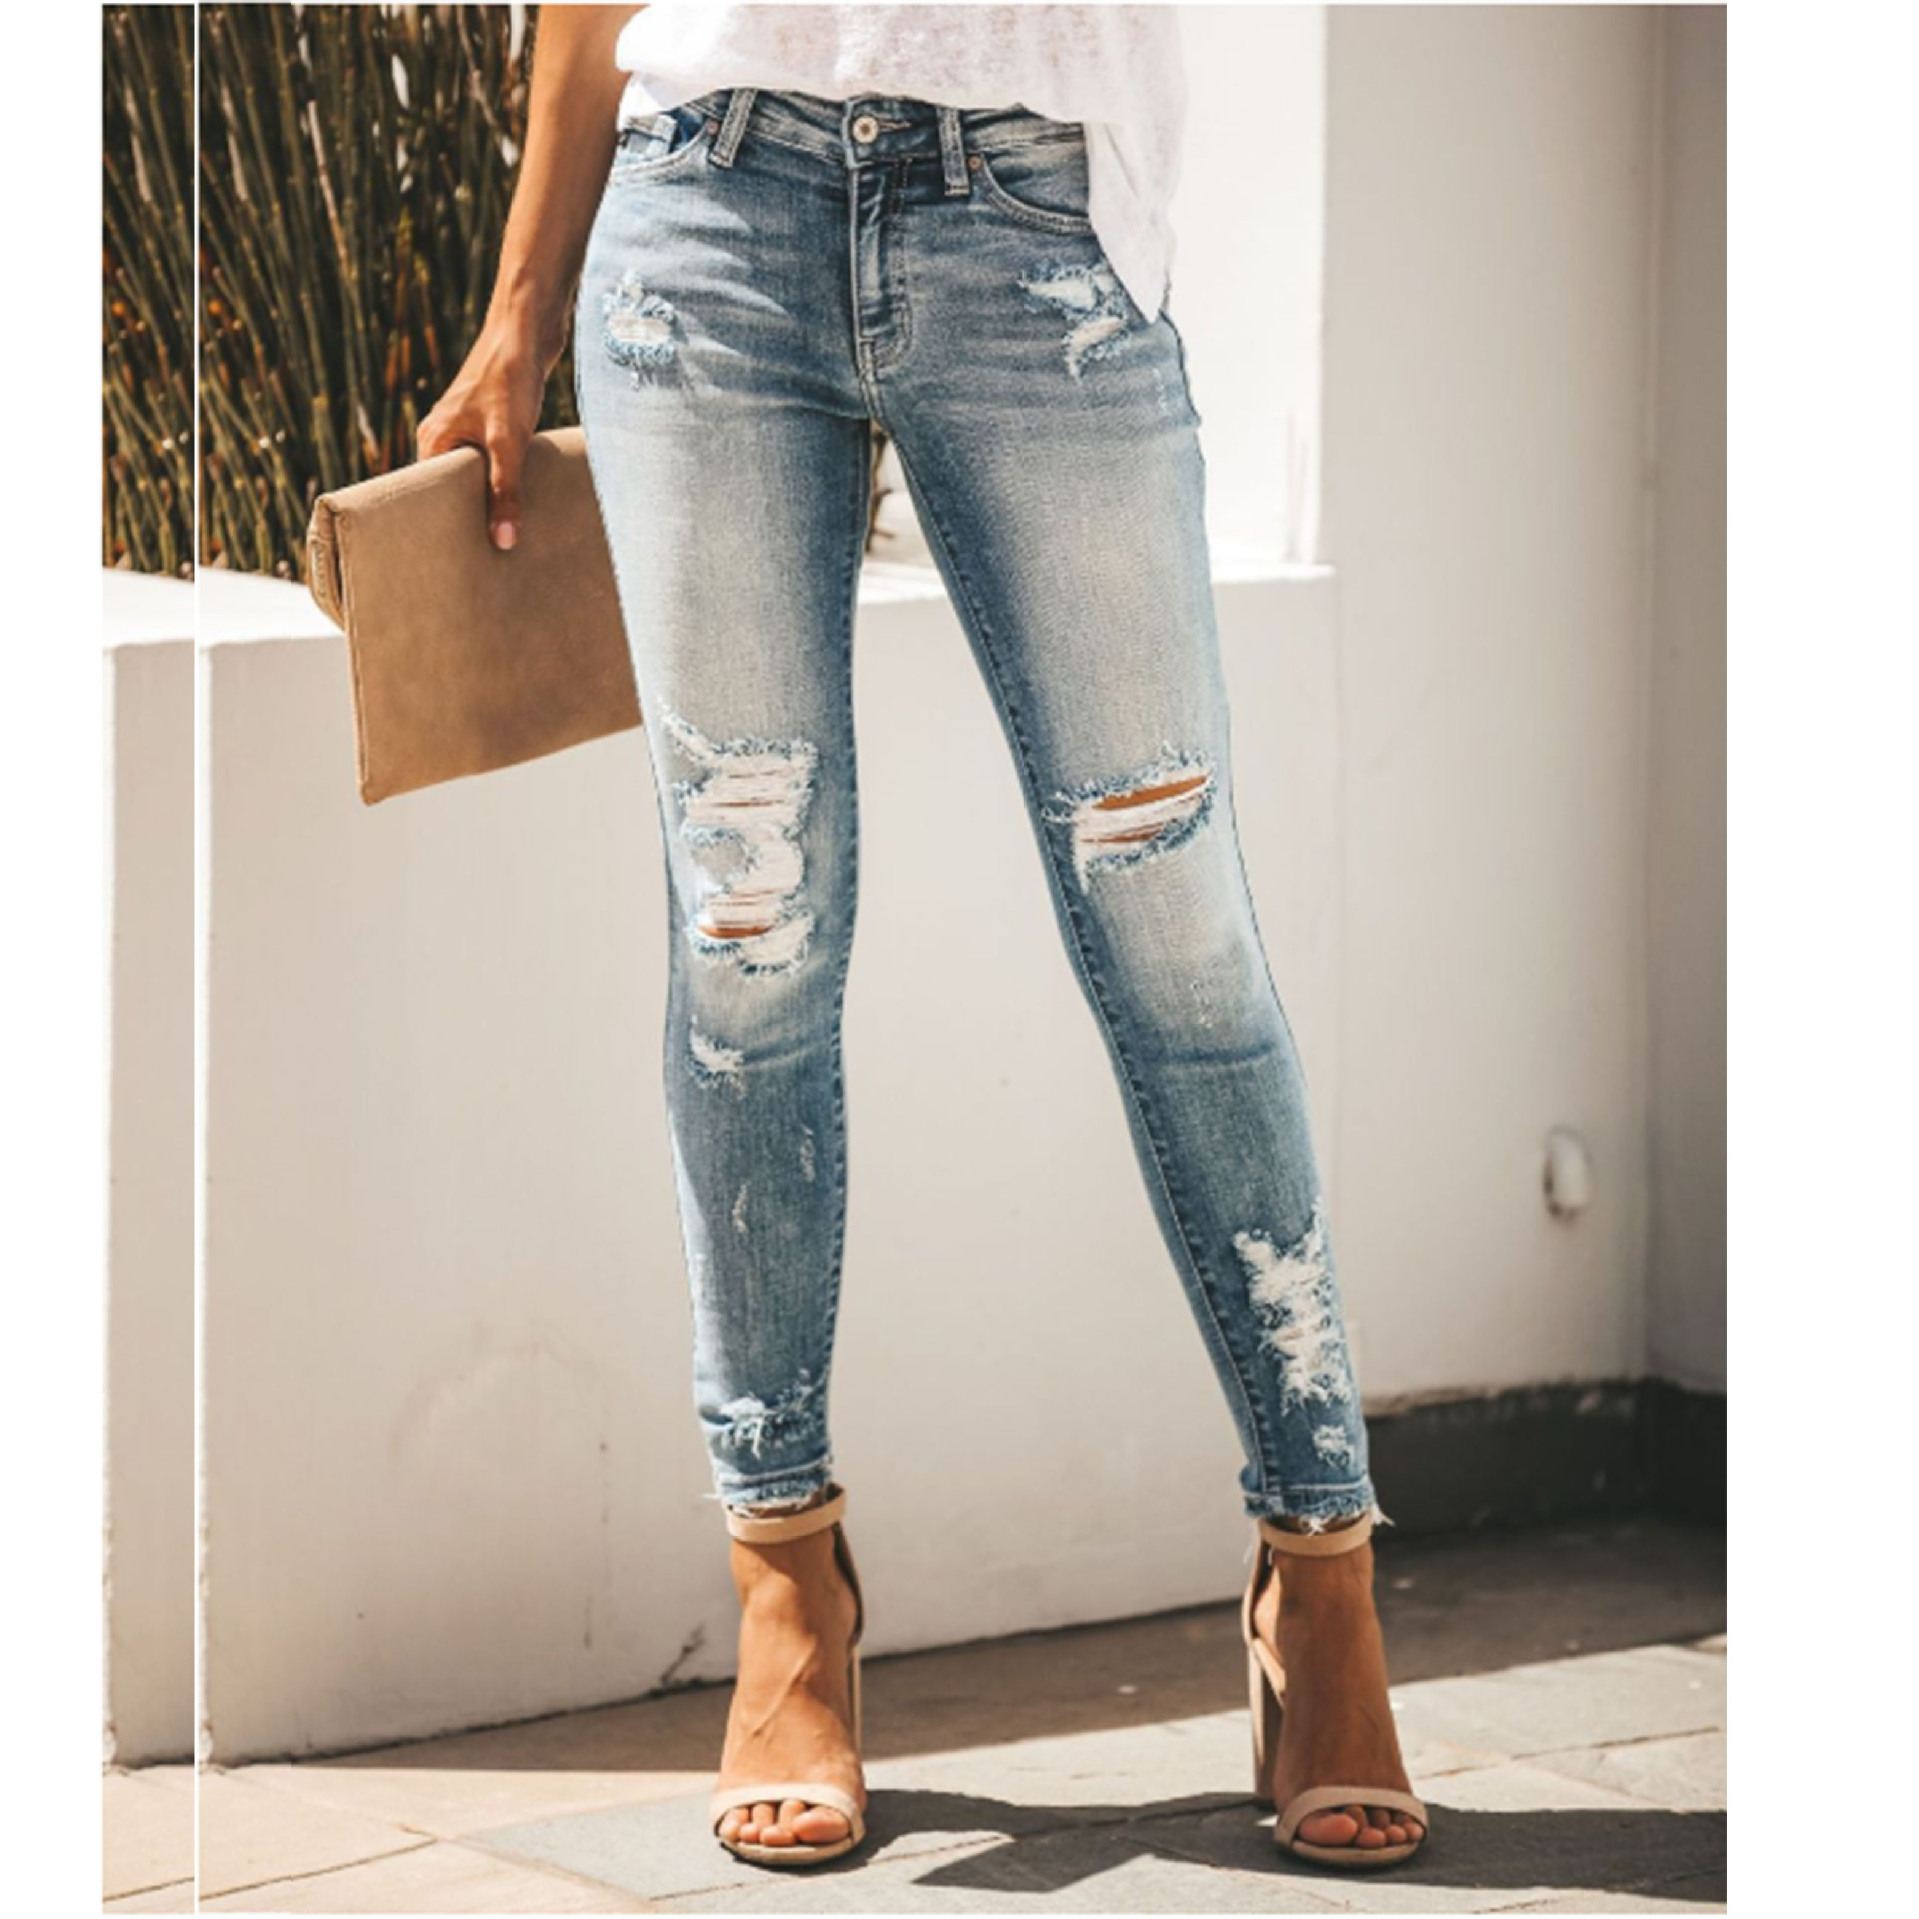 Summer Button Stretch Mid-Waist Ladies Jeans Hole Ladies Jeans Casual Female Pencil Pants Straight Slim Ladies Feet Jeans